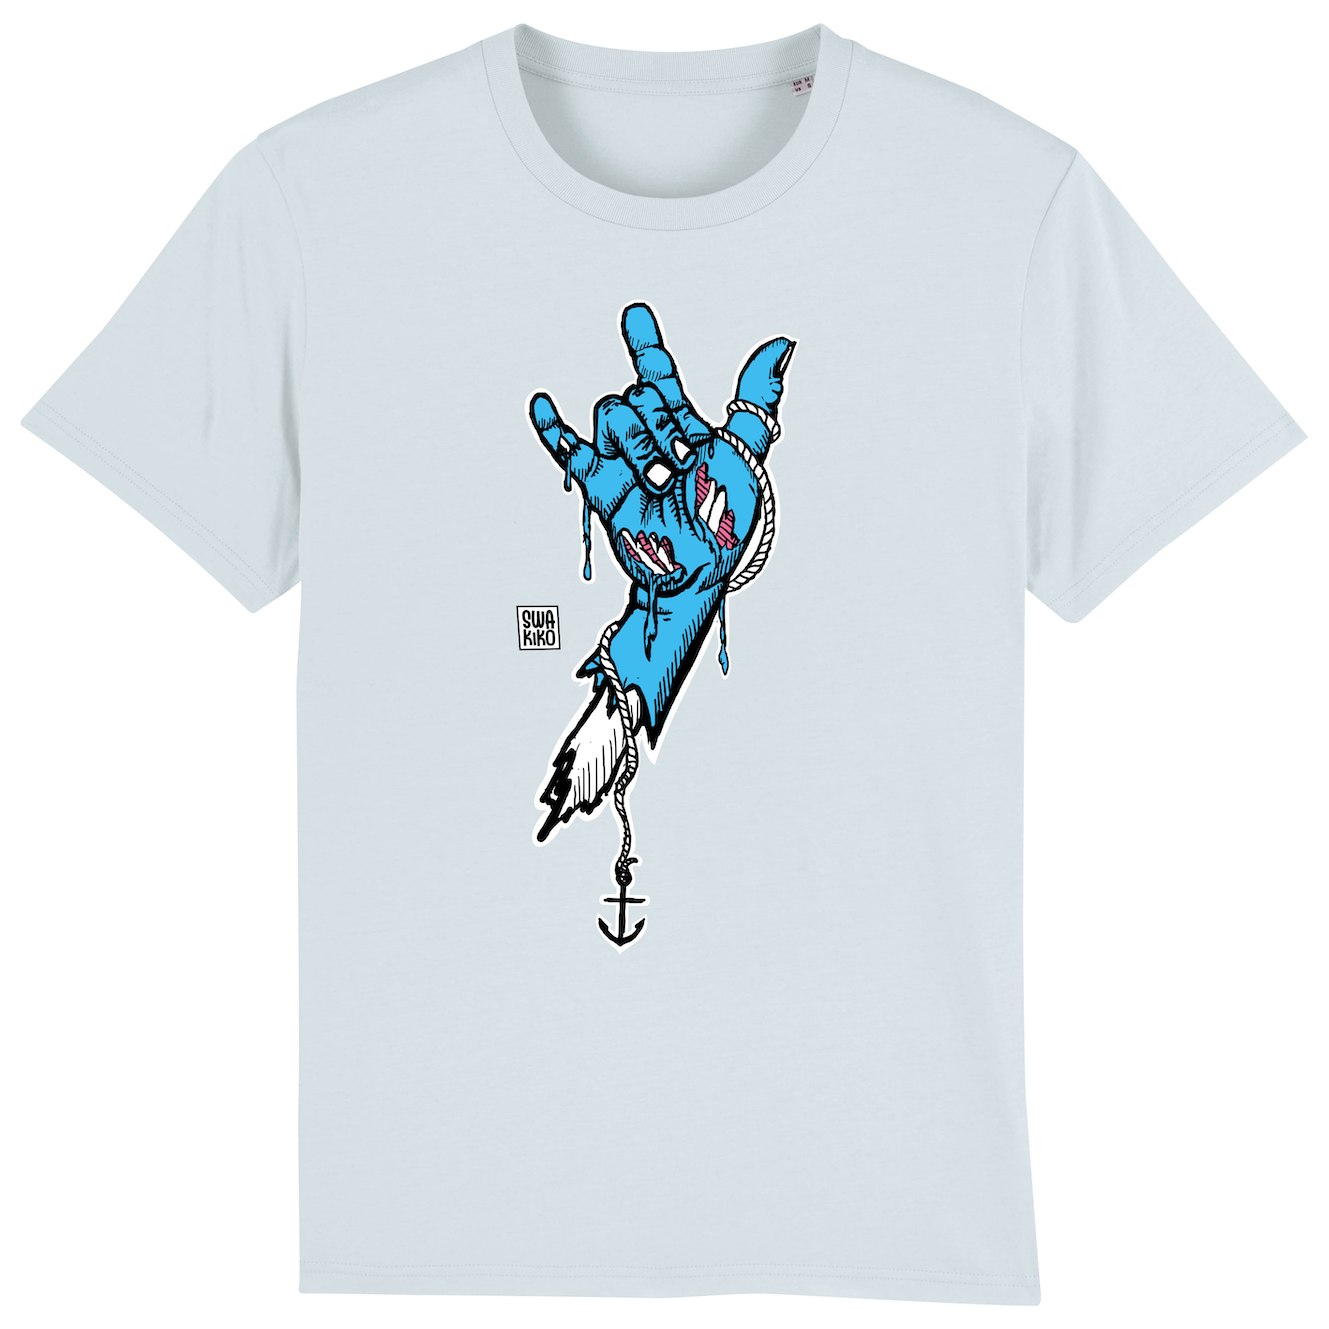 Surf t-shirt men blue, rock hand blue